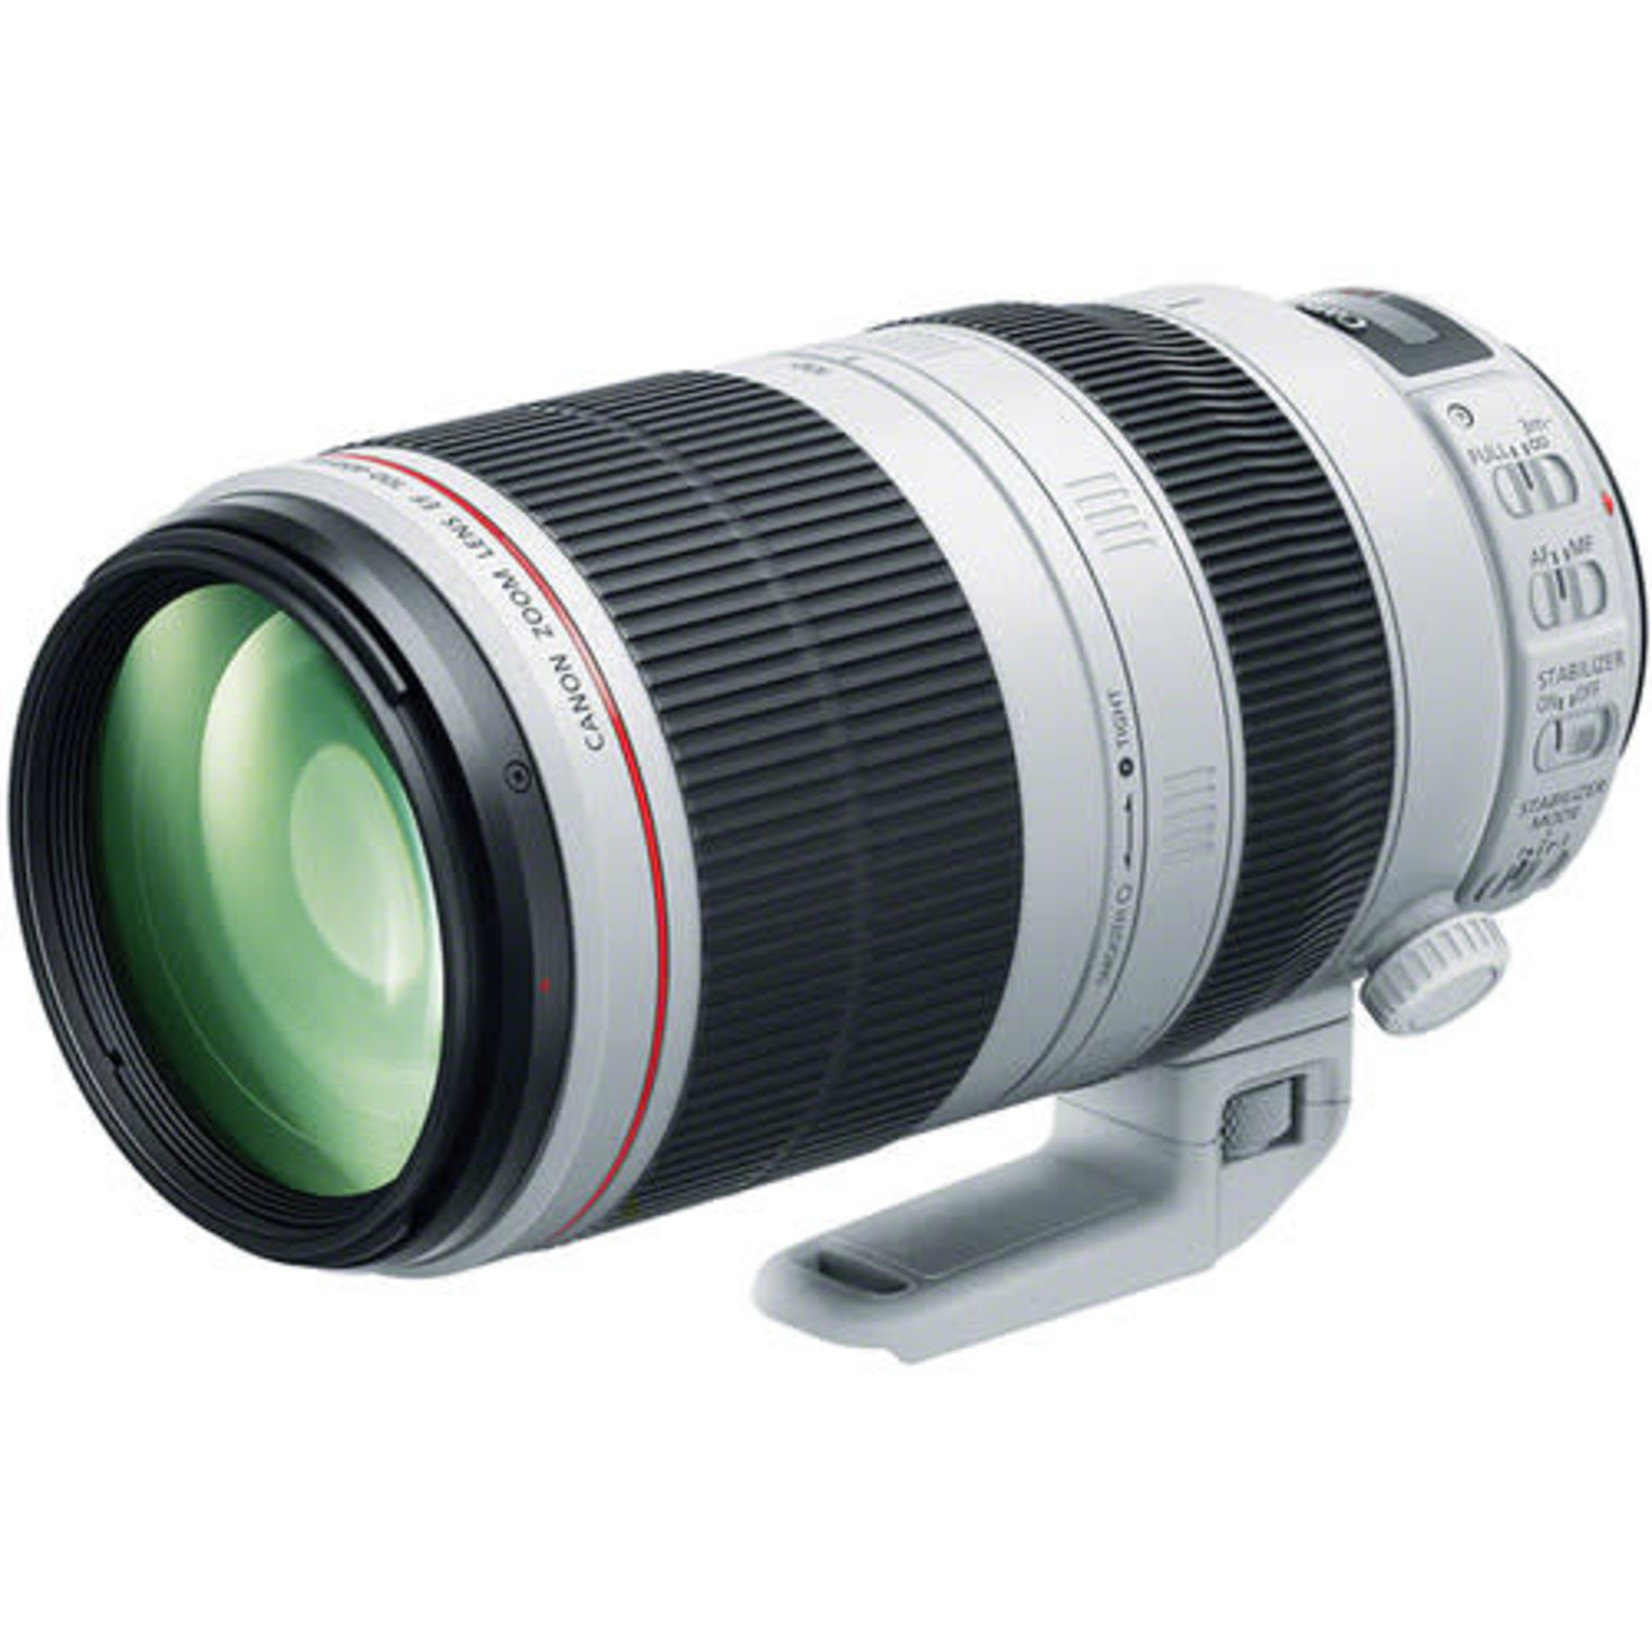 Canon Canon EF 100-400mm f/4.5-5.6L IS II USM Lens